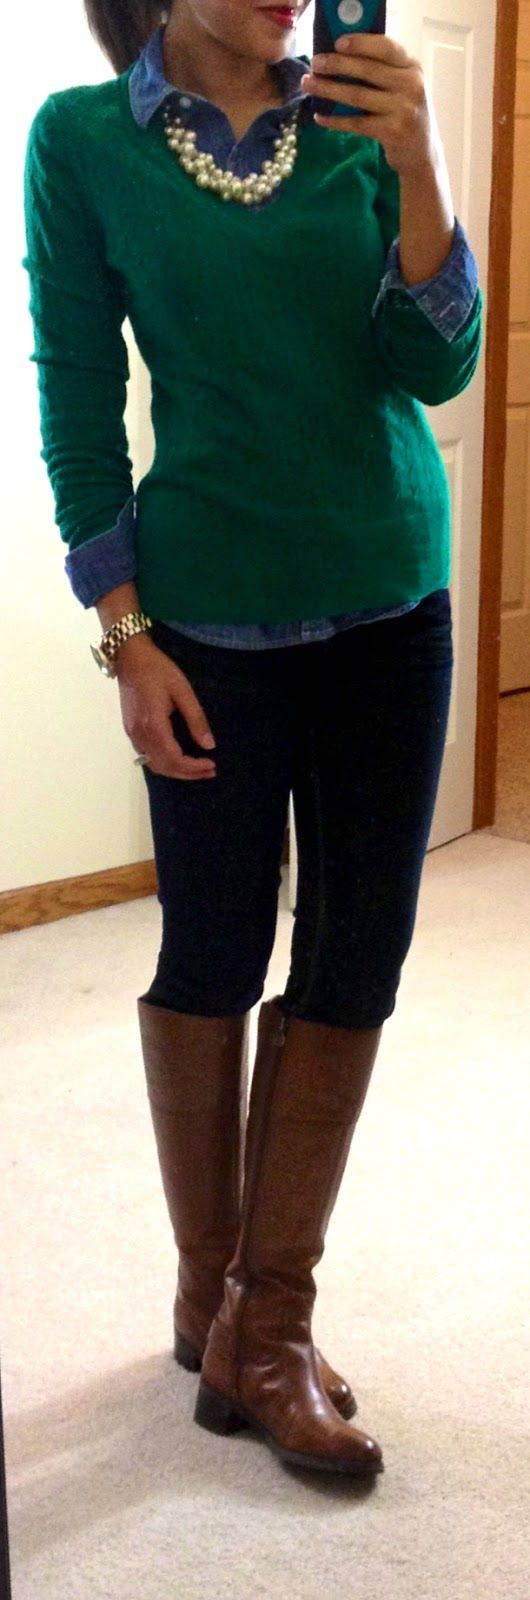 Old Navy chambray shirt& Old Navy sweater, Express Zelda skinny jeans,Etienne Aigner Chip riding bootsvia Macy's, F21 necklace, NY watch